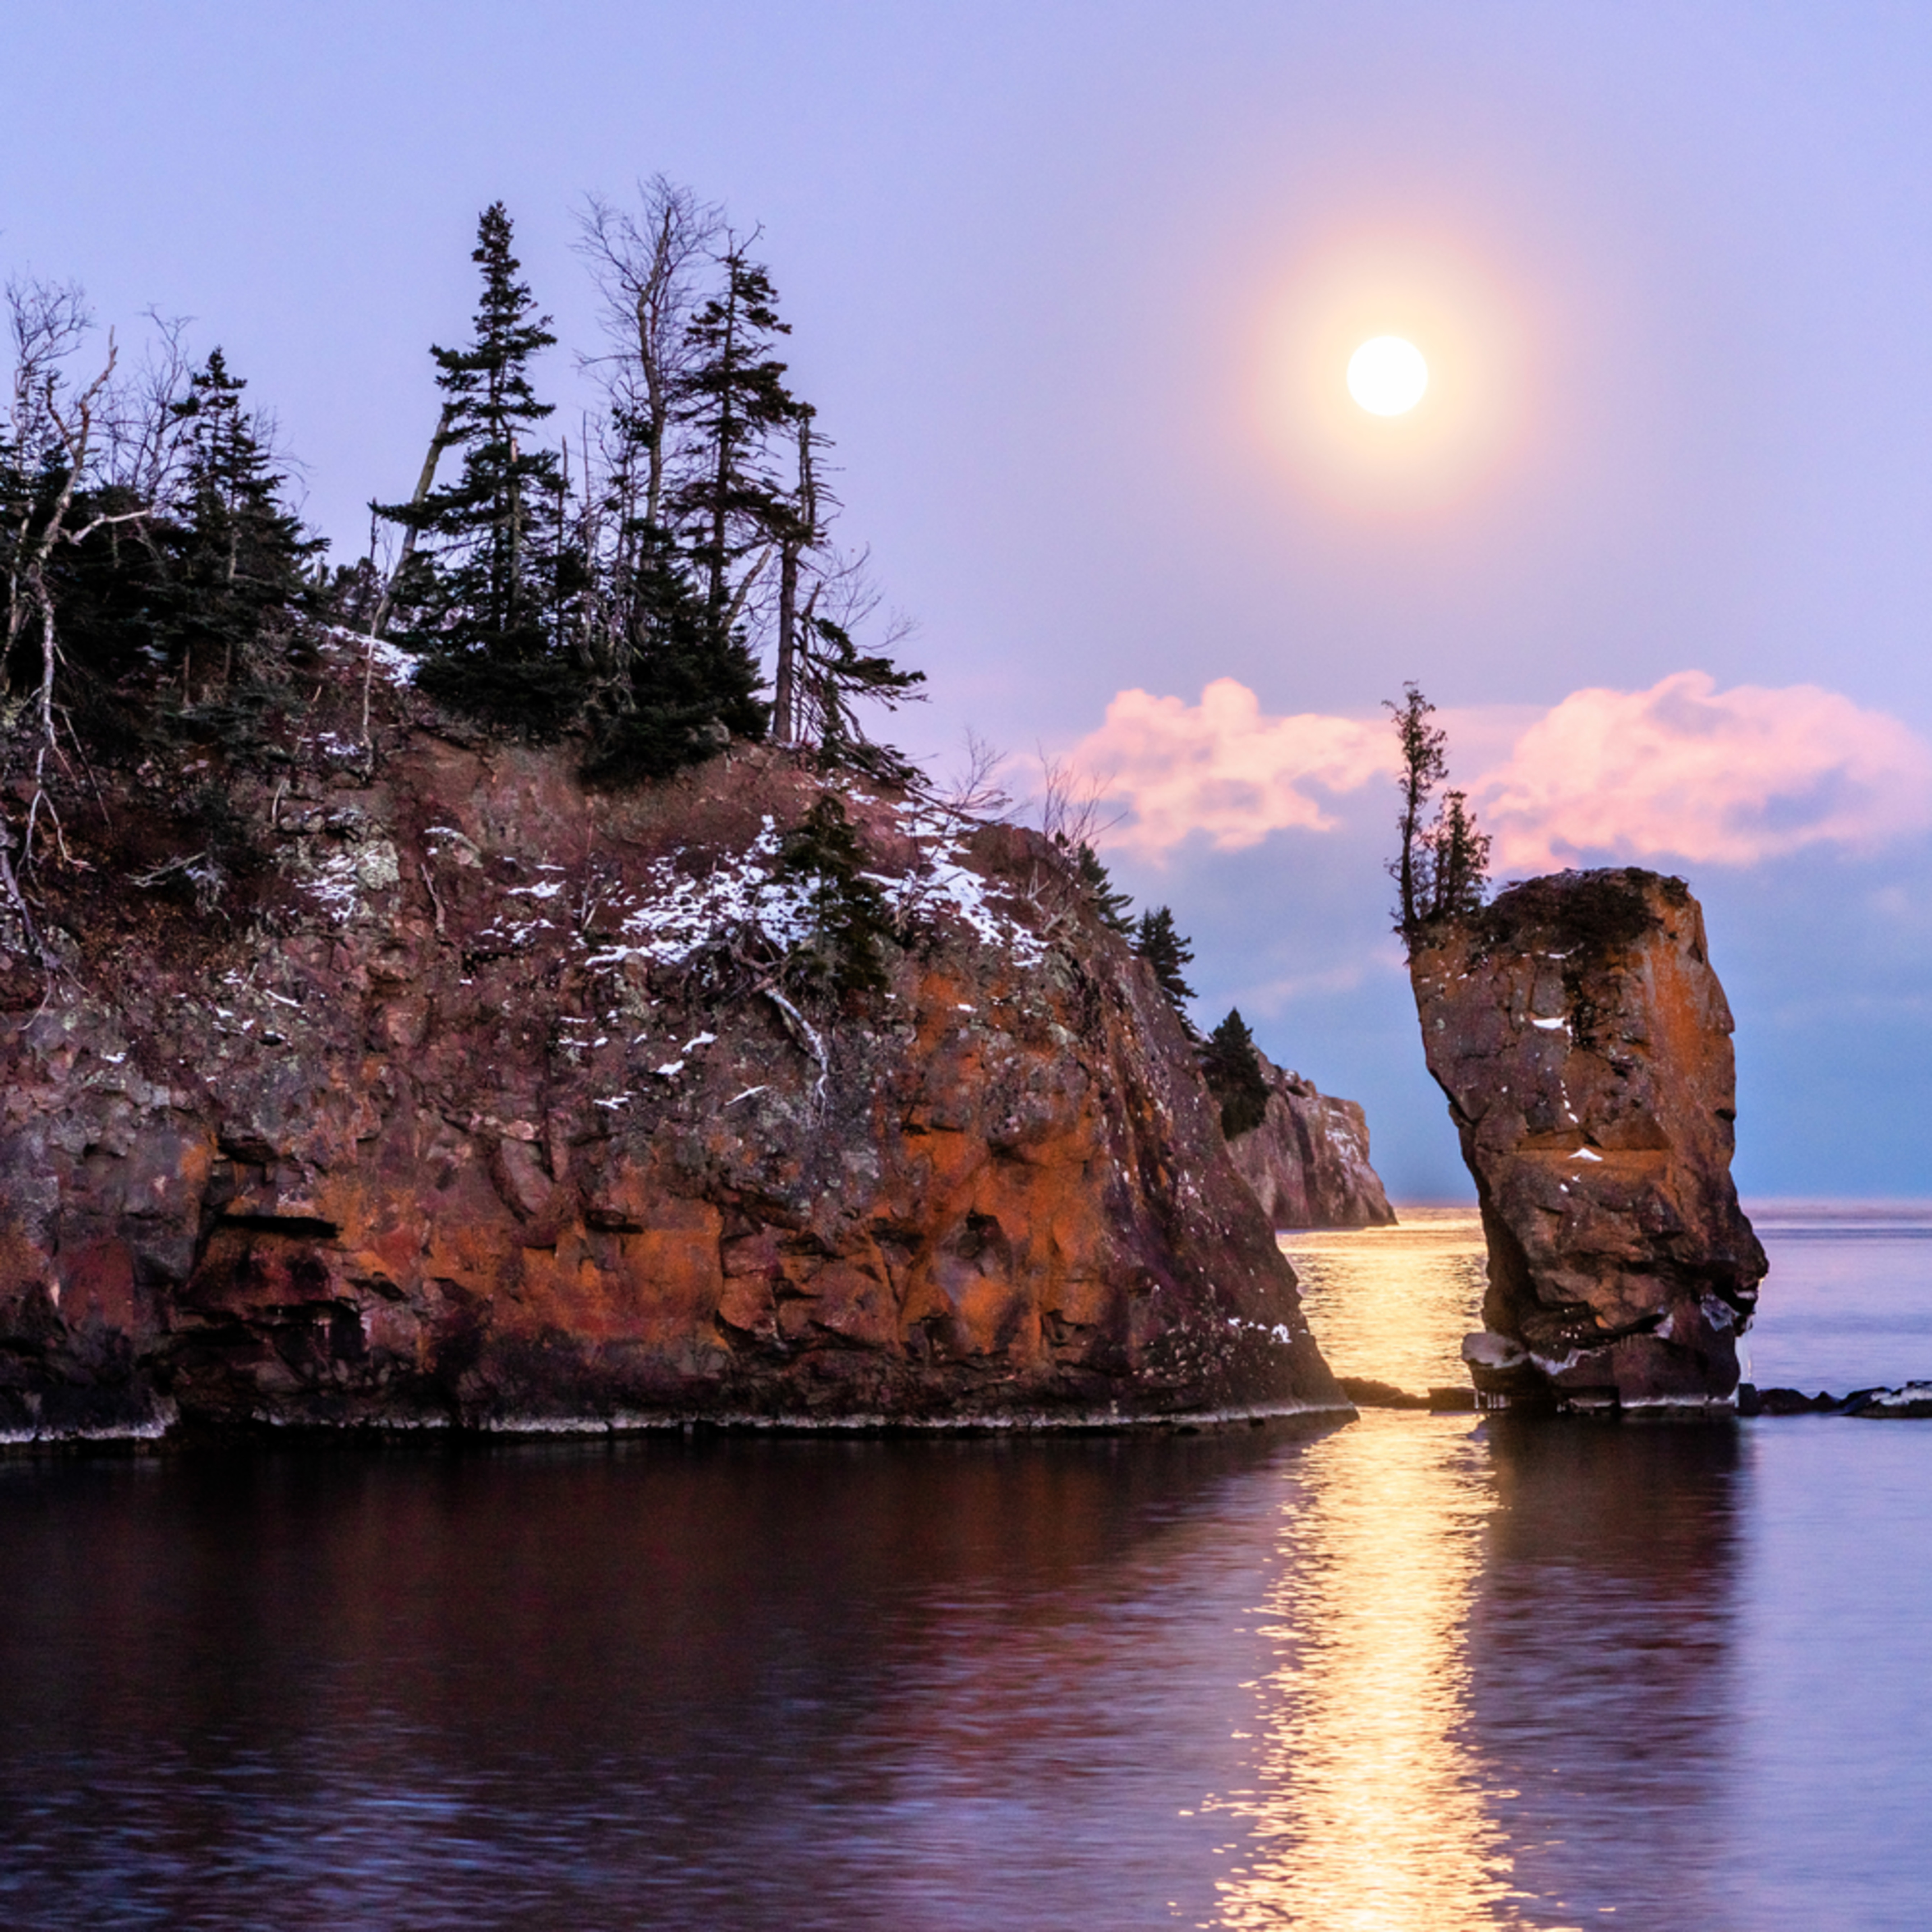 Last moon on the rise hhv0tv